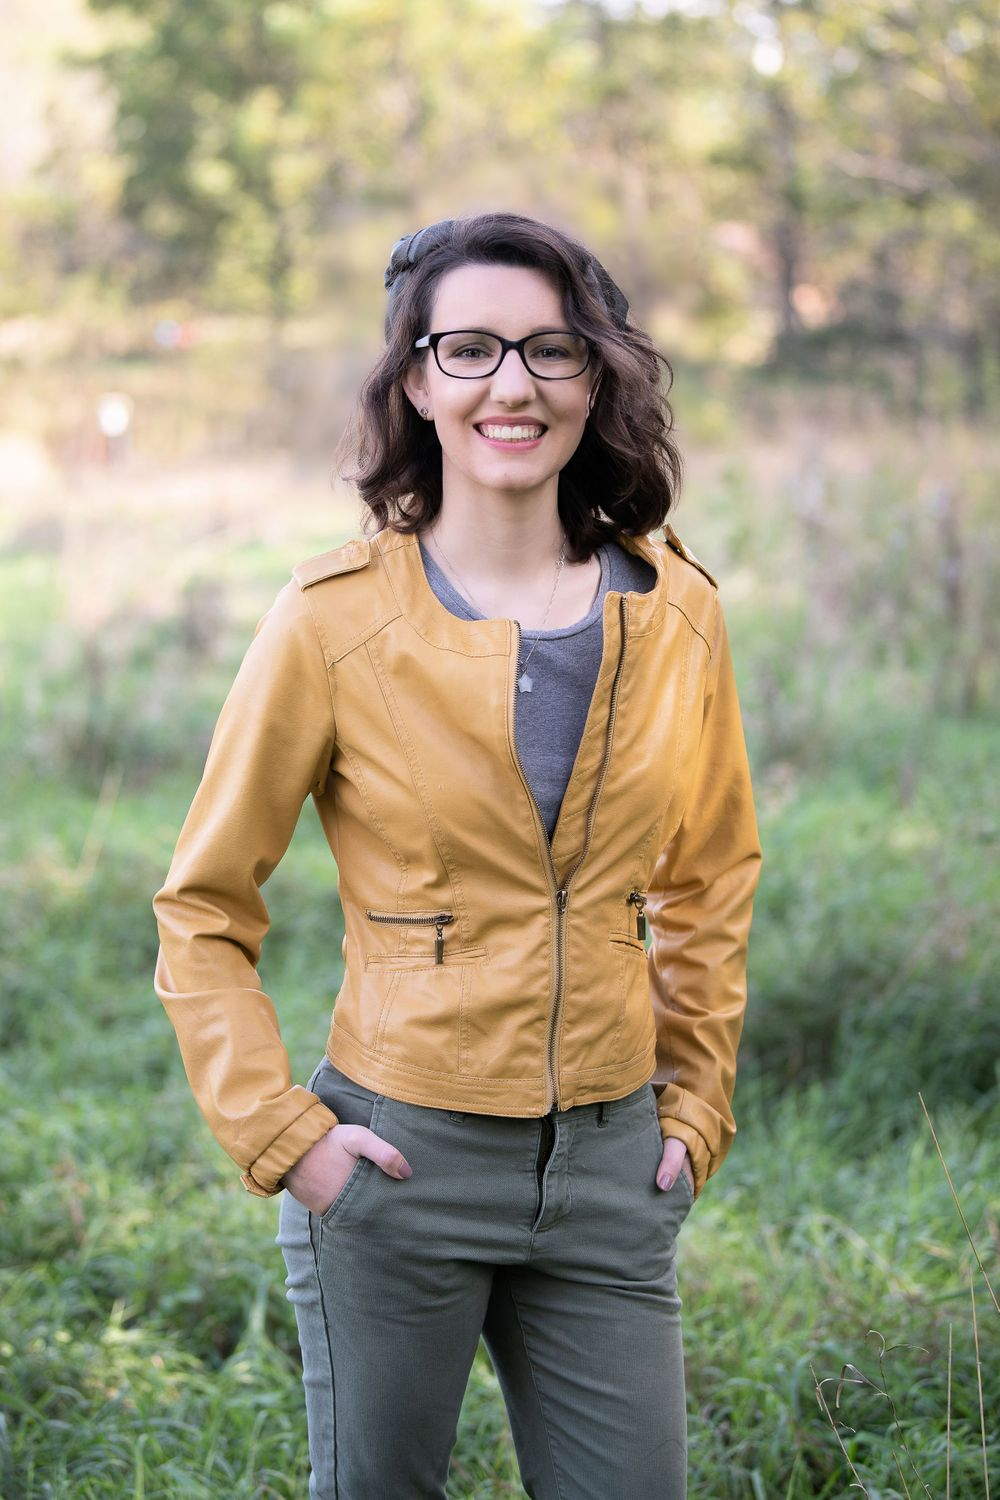 glasses, senior girl, yellow jacket, mustard color